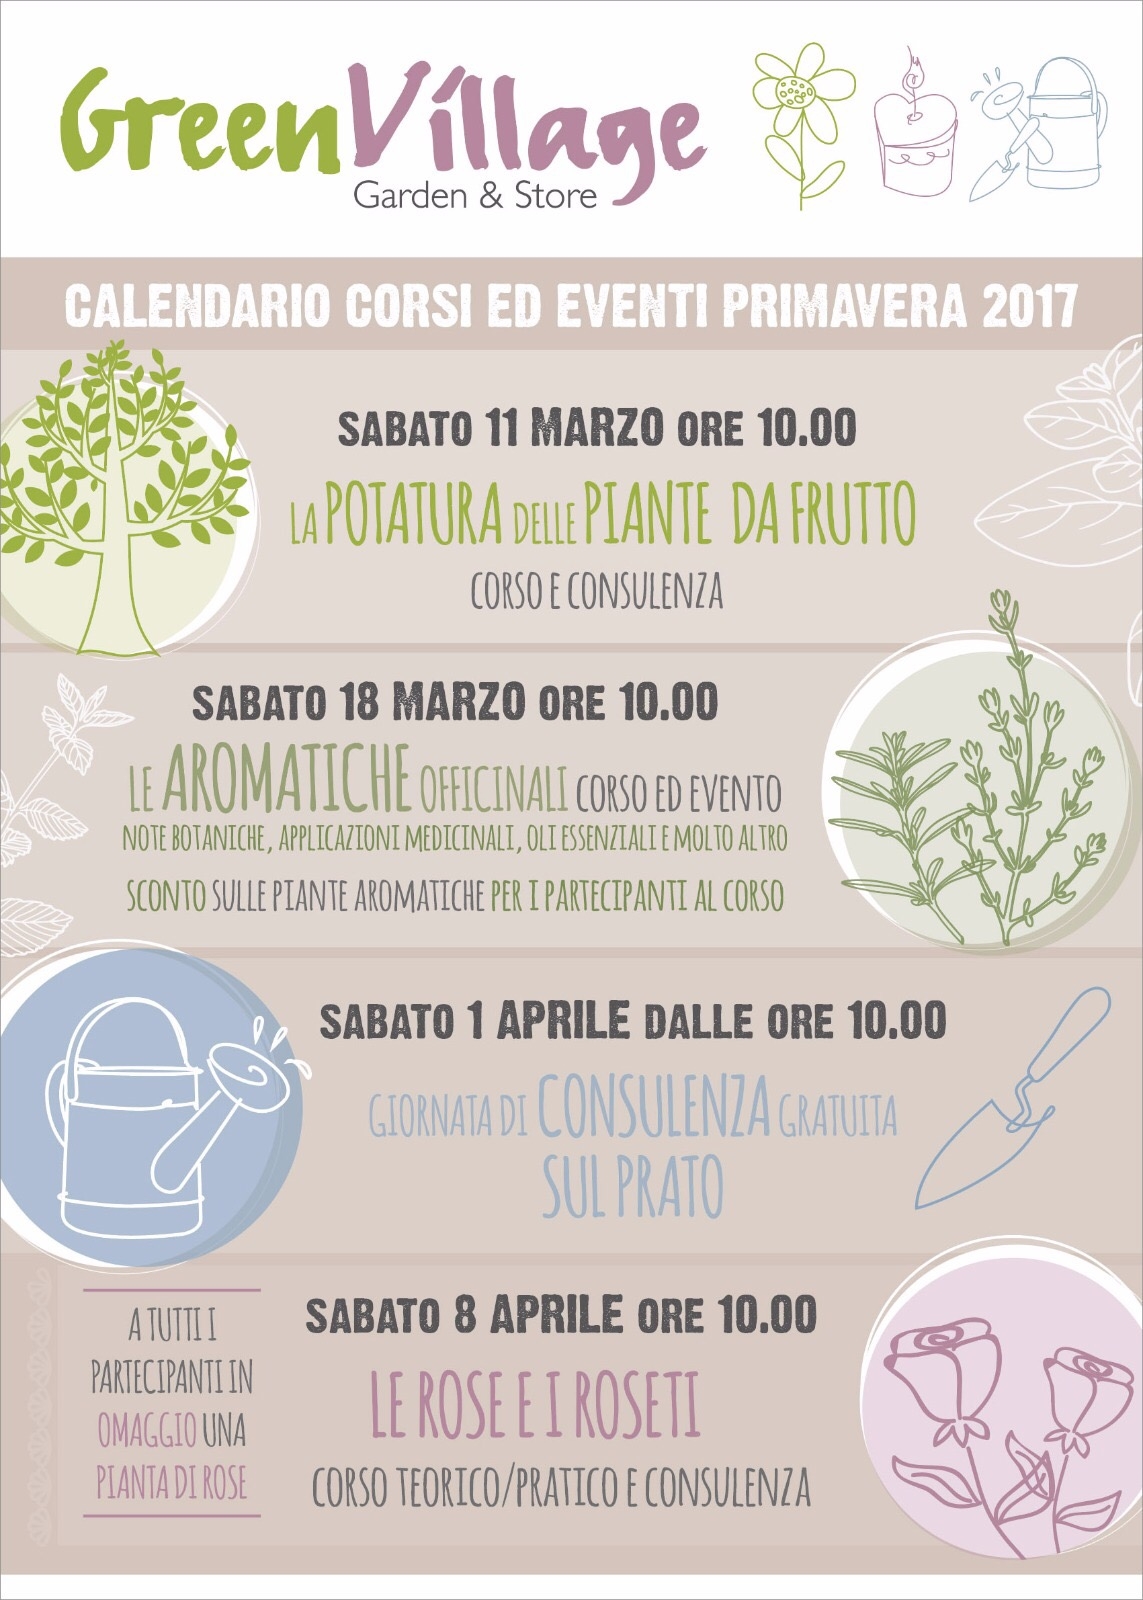 greenvillage-calendario-corsi-ed-eventi-primavera-2017-1